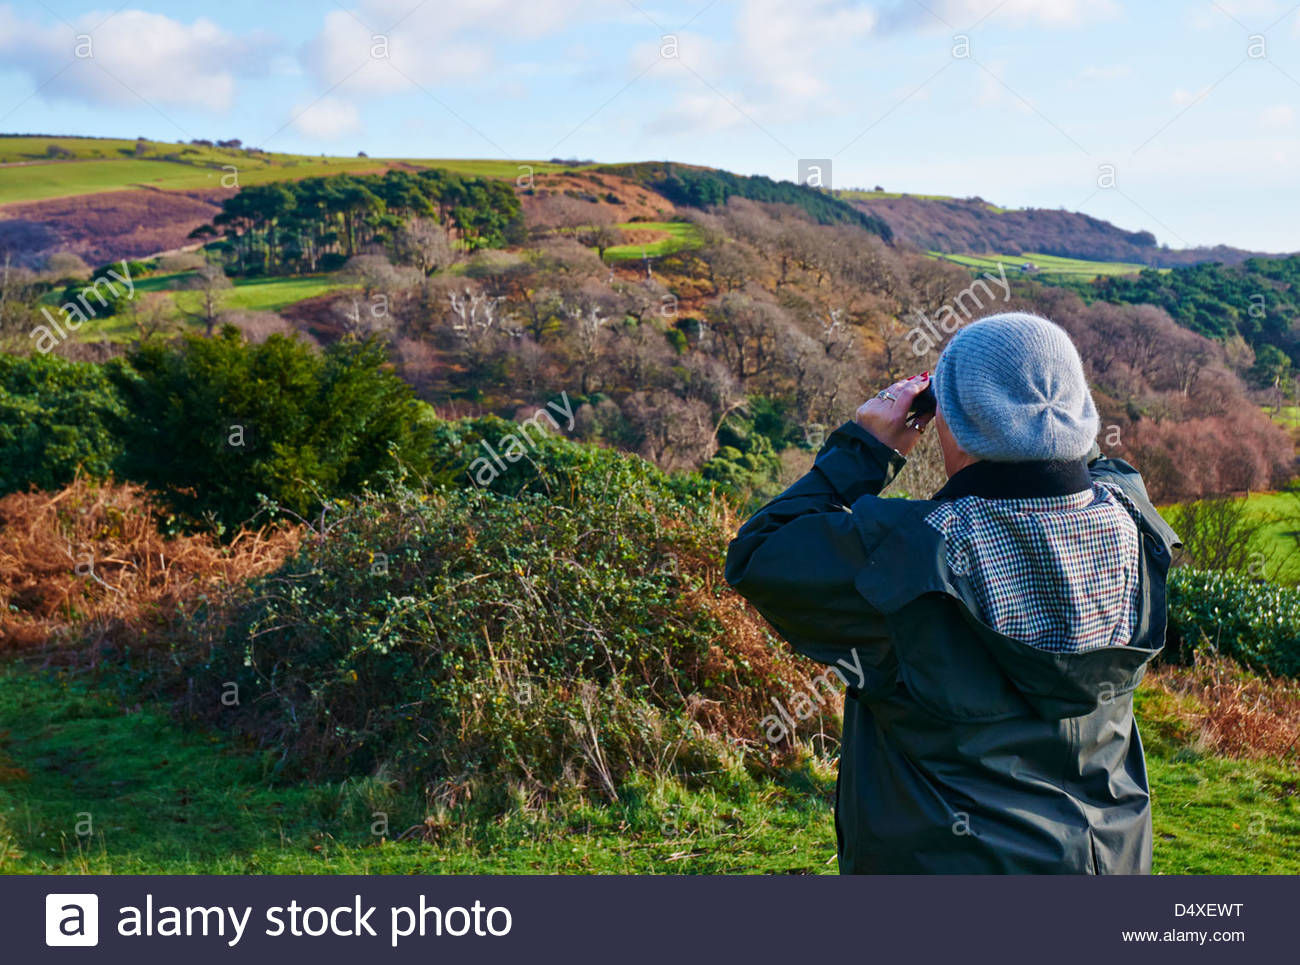 Rear view of a woman in a woolen hat green jacket looking through binoculars in the welsh countryside birdwatching - Stock Image